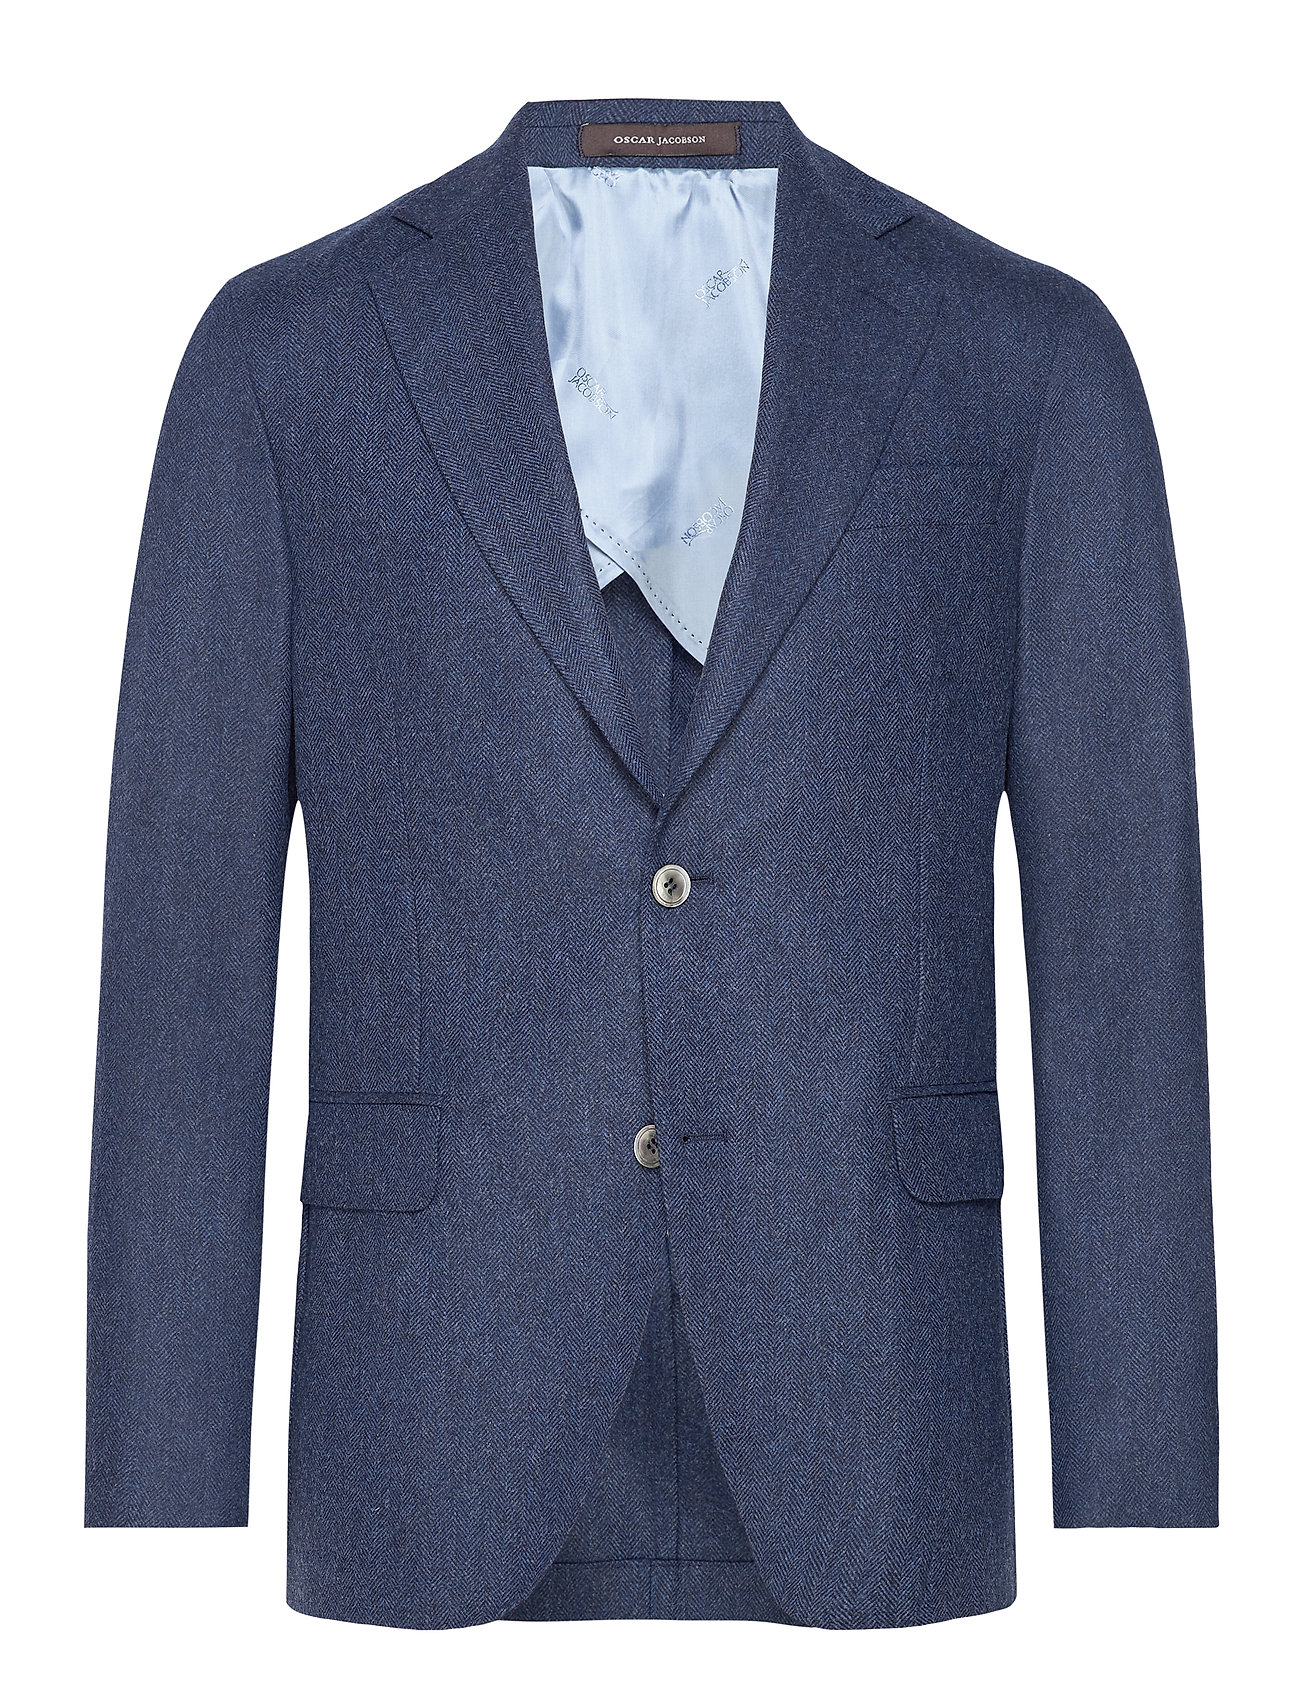 Oscar Jacobson Ferry Blazer - 229 - FRENCH BLUE